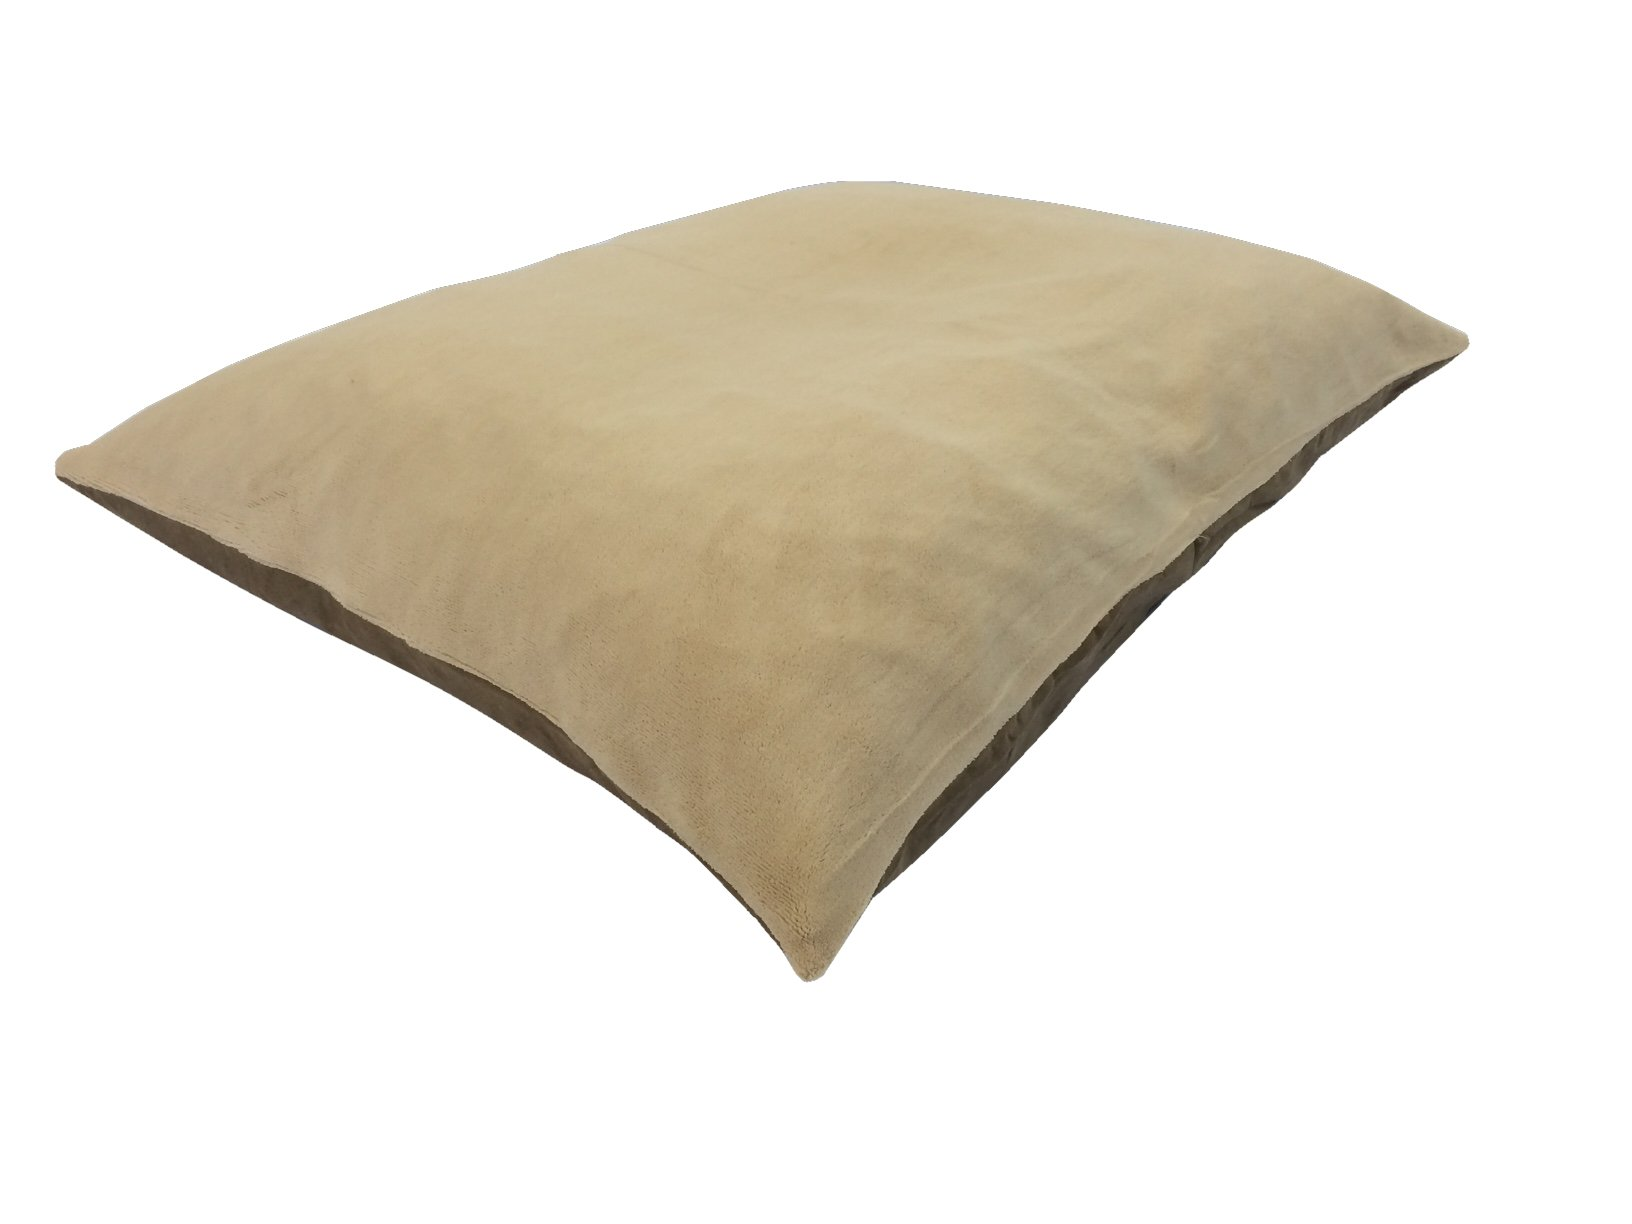 36''x29'' Medium Size MicroCushion High Density Memory Foam Soft PolyFiber Waterproof Pet Pillow Bed with Removable Zippered Luxurious Fleece Beige / Brown Suede Cover for Small to Medium Dogs